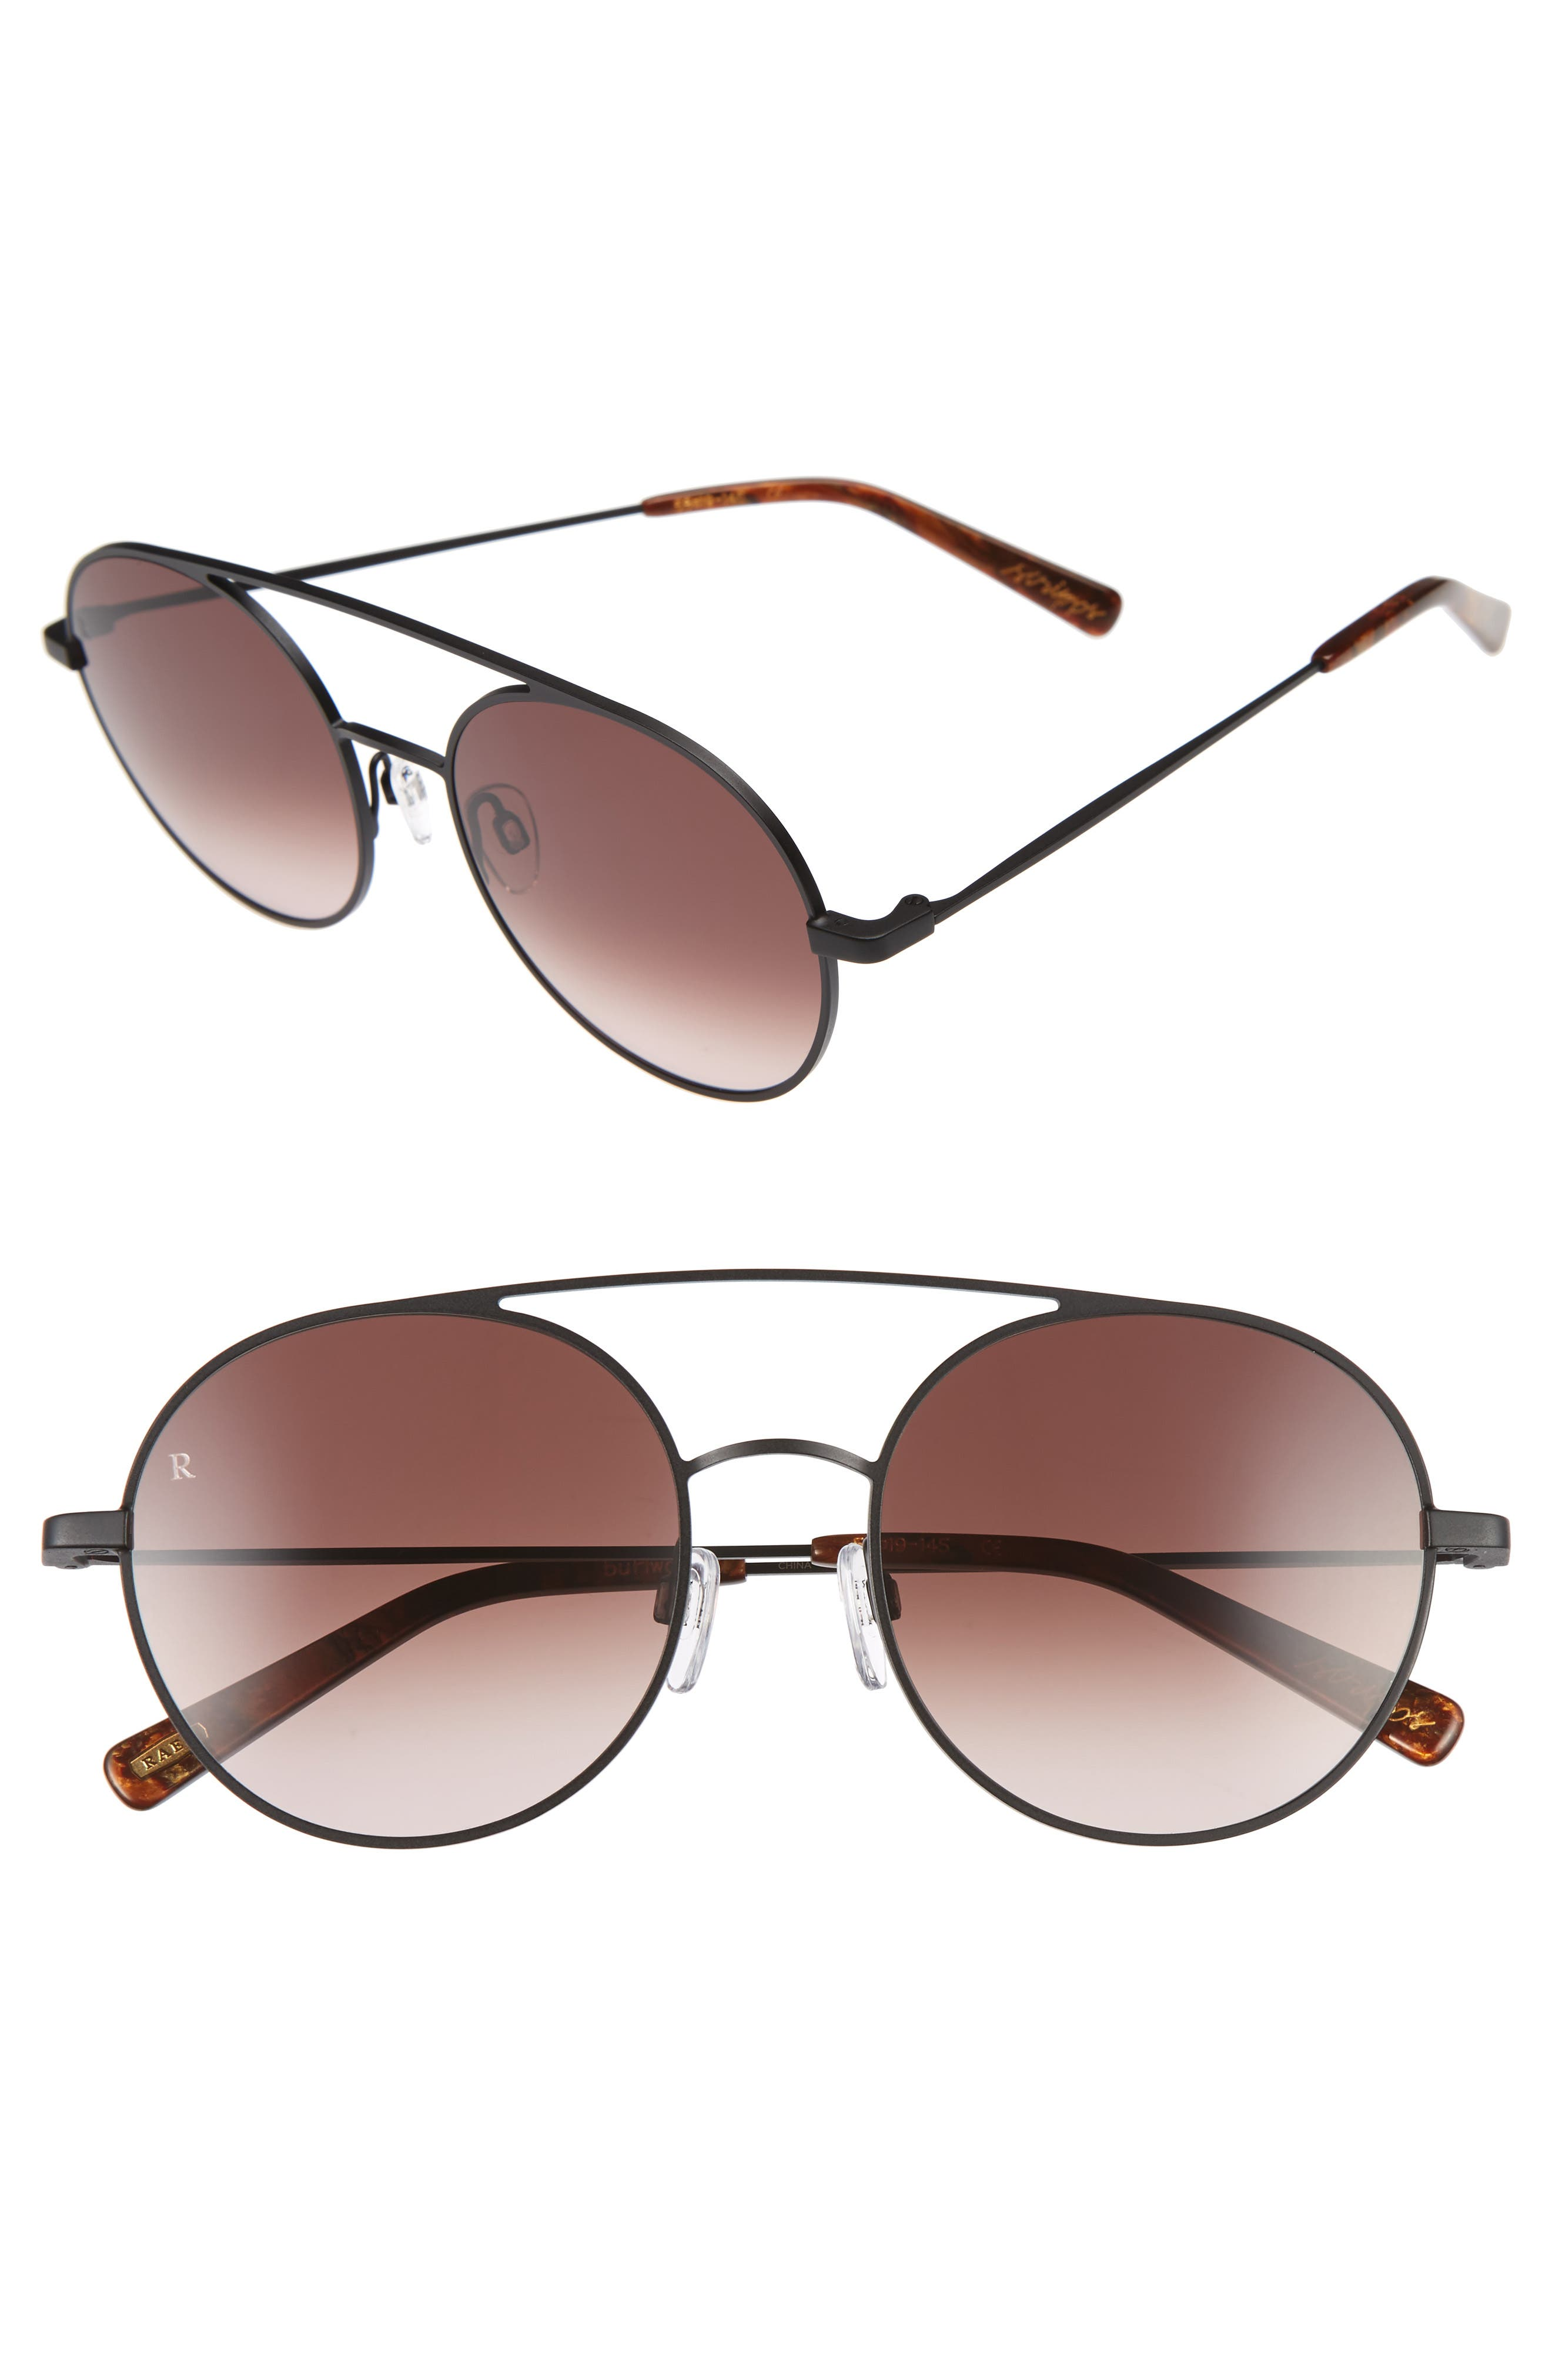 Scripps 55mm Round Sunglasses,                             Main thumbnail 1, color,                             001